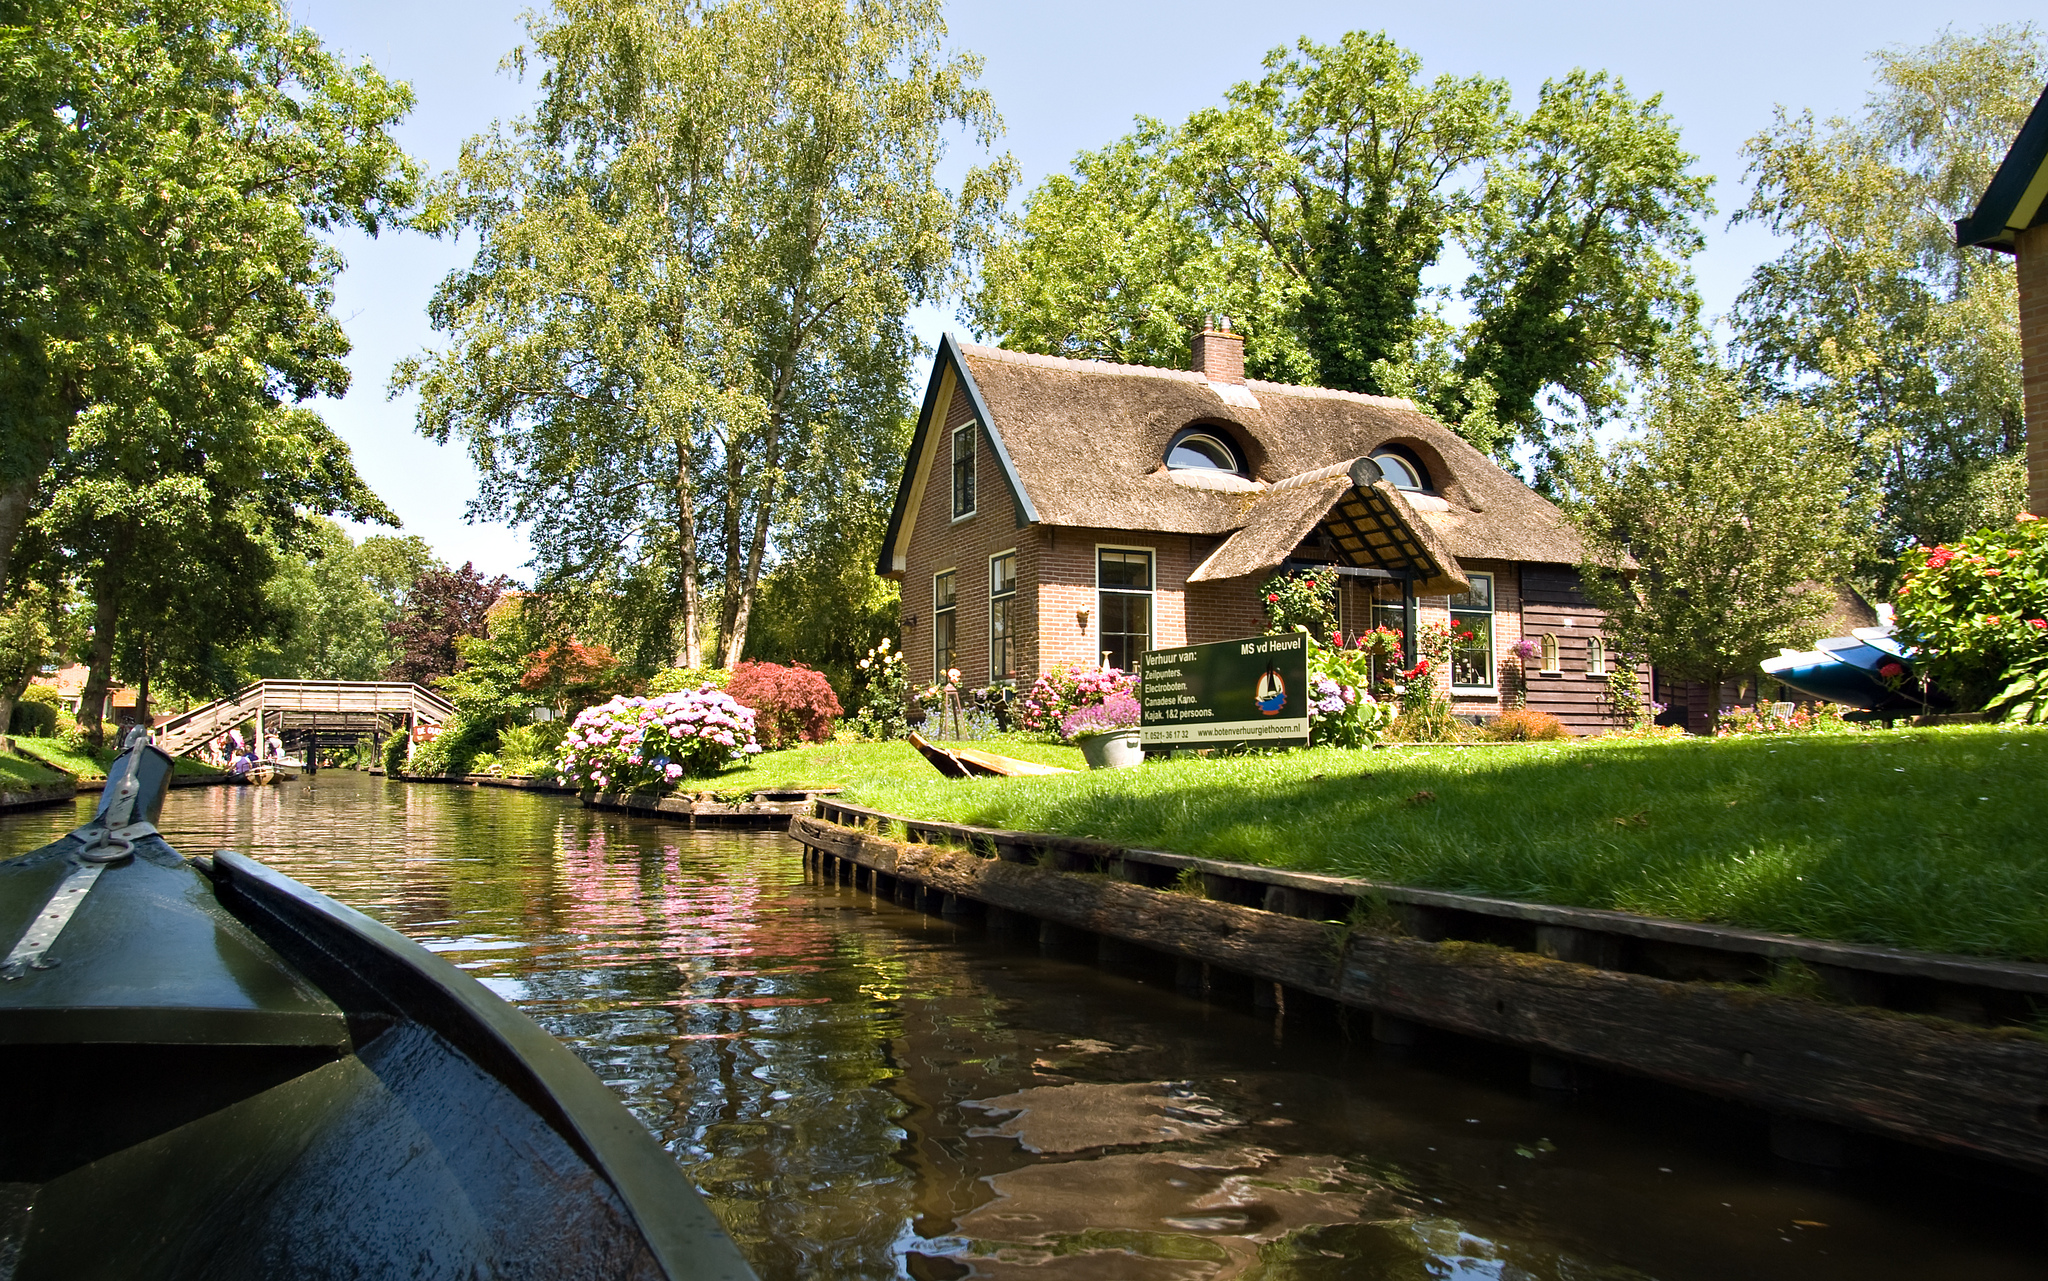 The Venice Of The North - Giethoorn - The Village With No ... - photo#45